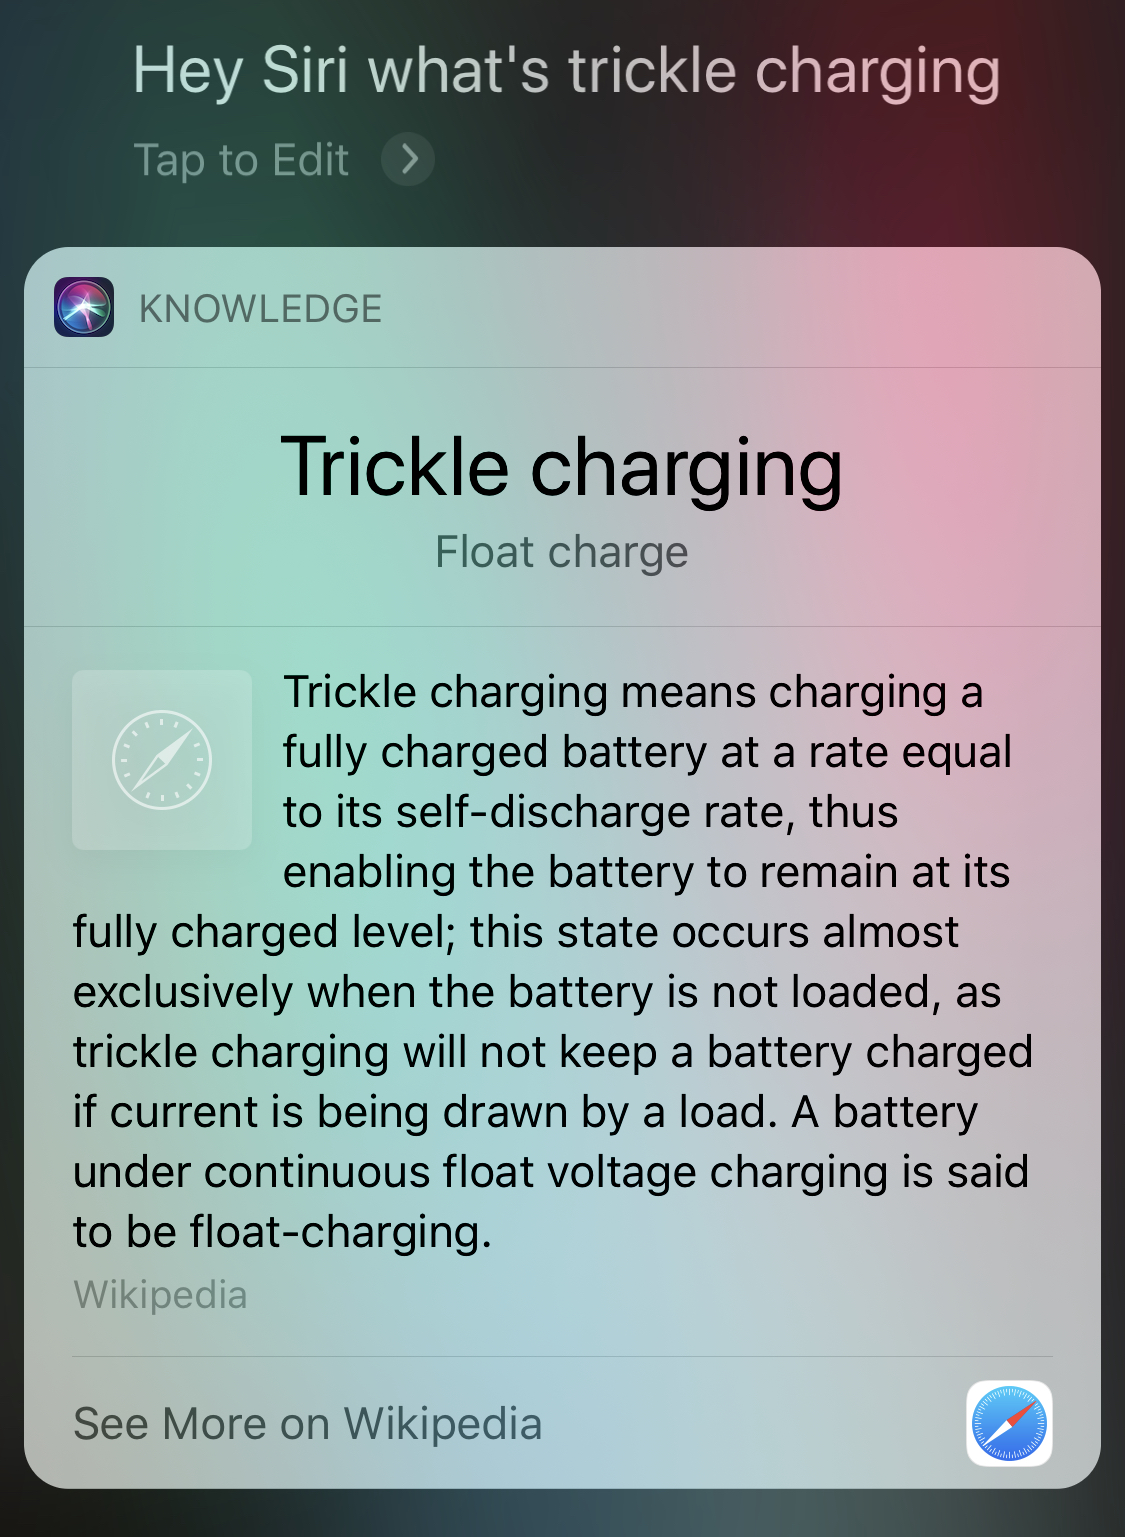 Hey Siri… - What's trickle charging?